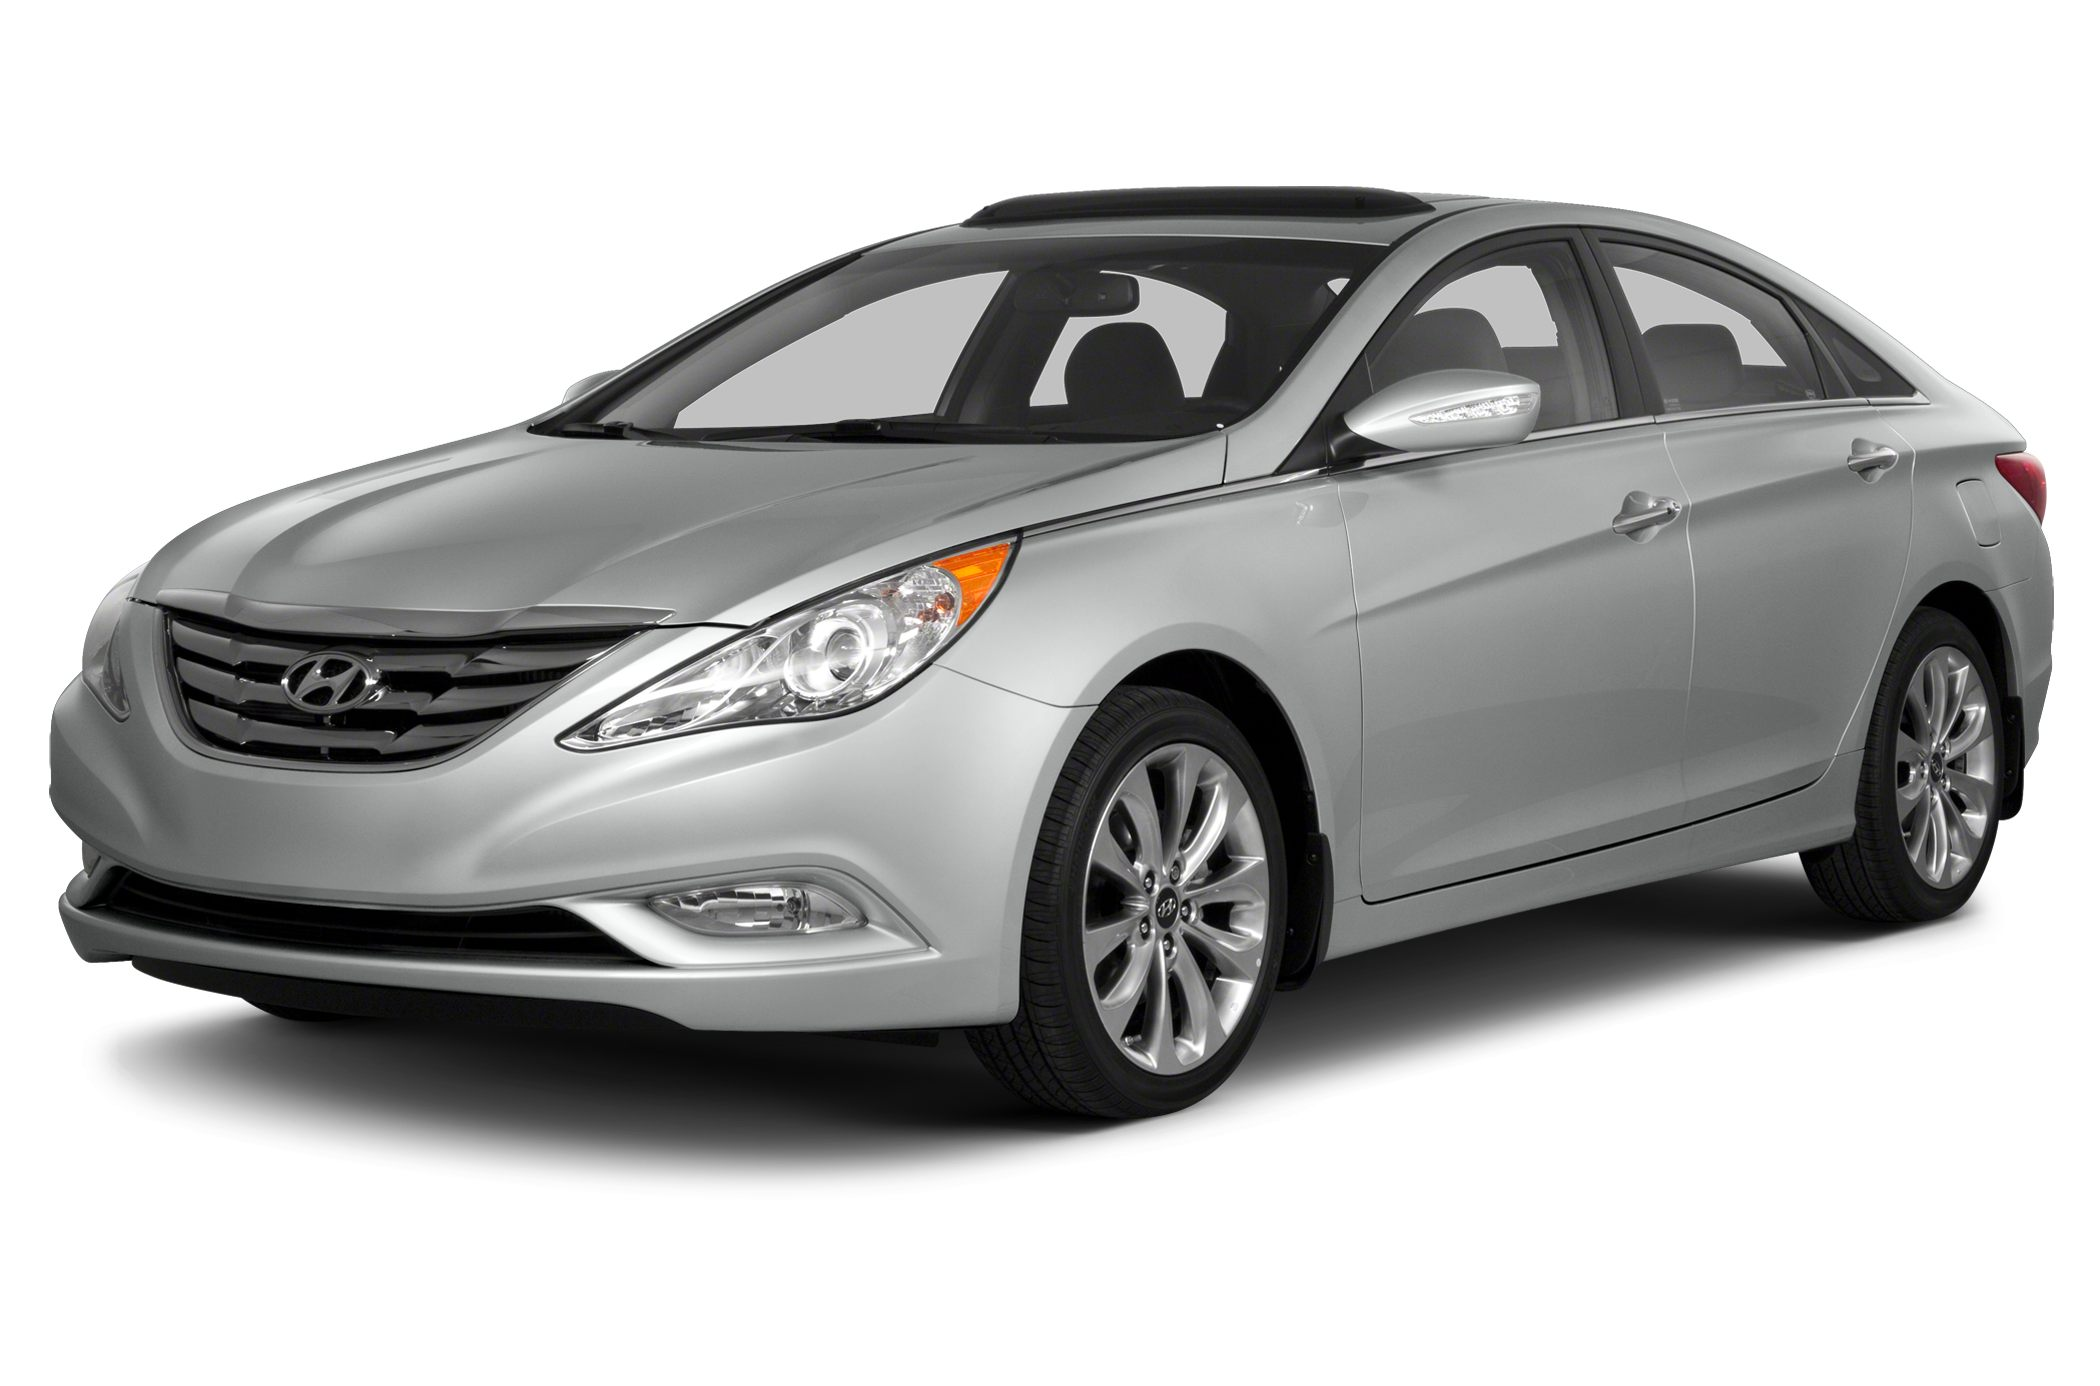 2013 Hyundai Sonata GLS Sedan for sale in Dayton for $16,348 with 44,488 miles.